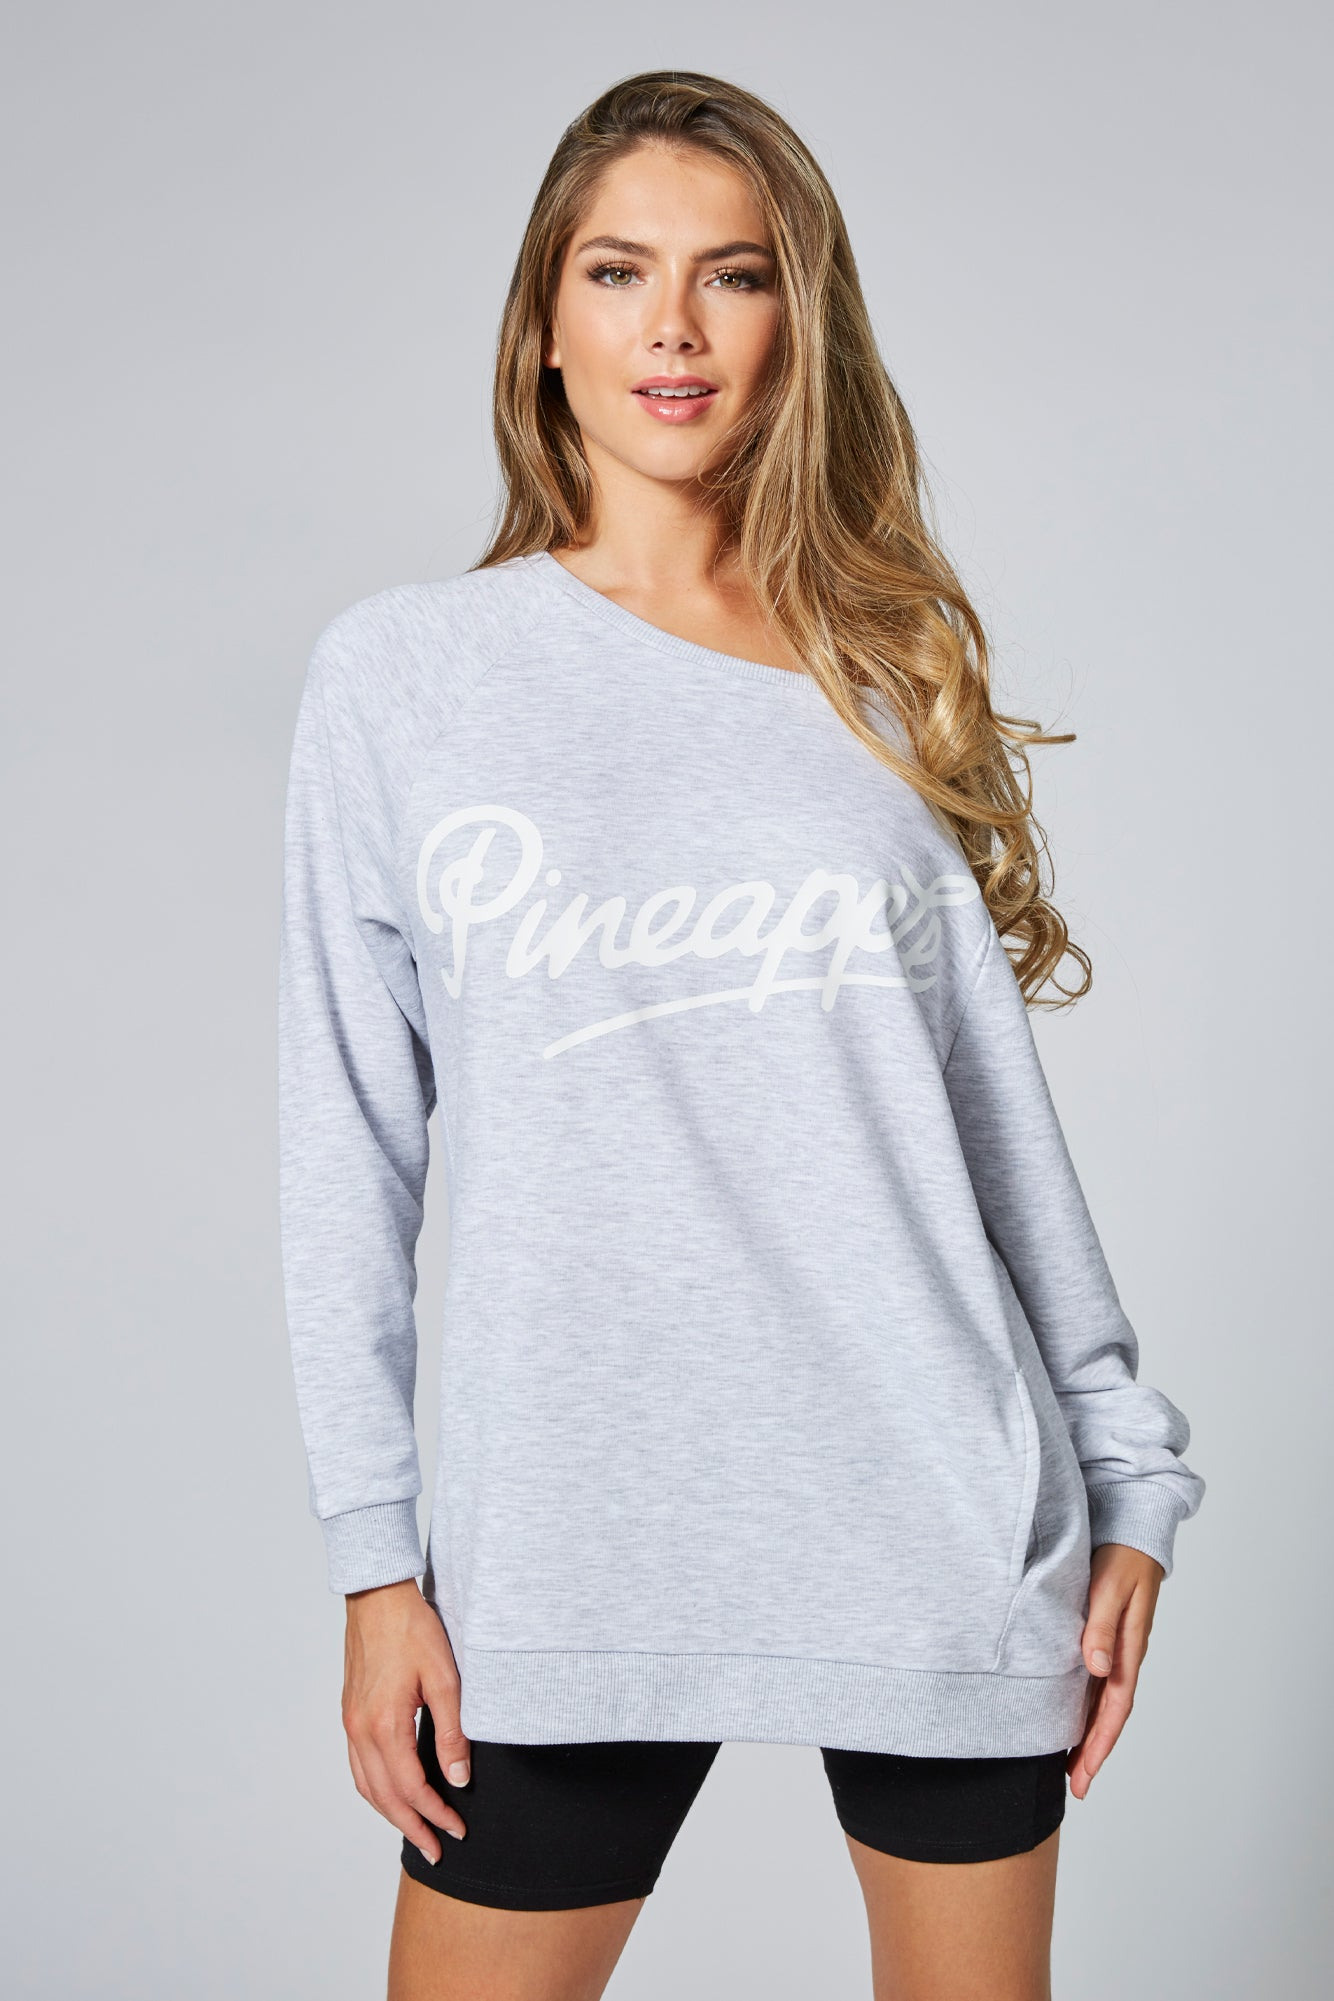 Pineapple Dancewear Women's Grey Monster Sweatshirt TL15560A3